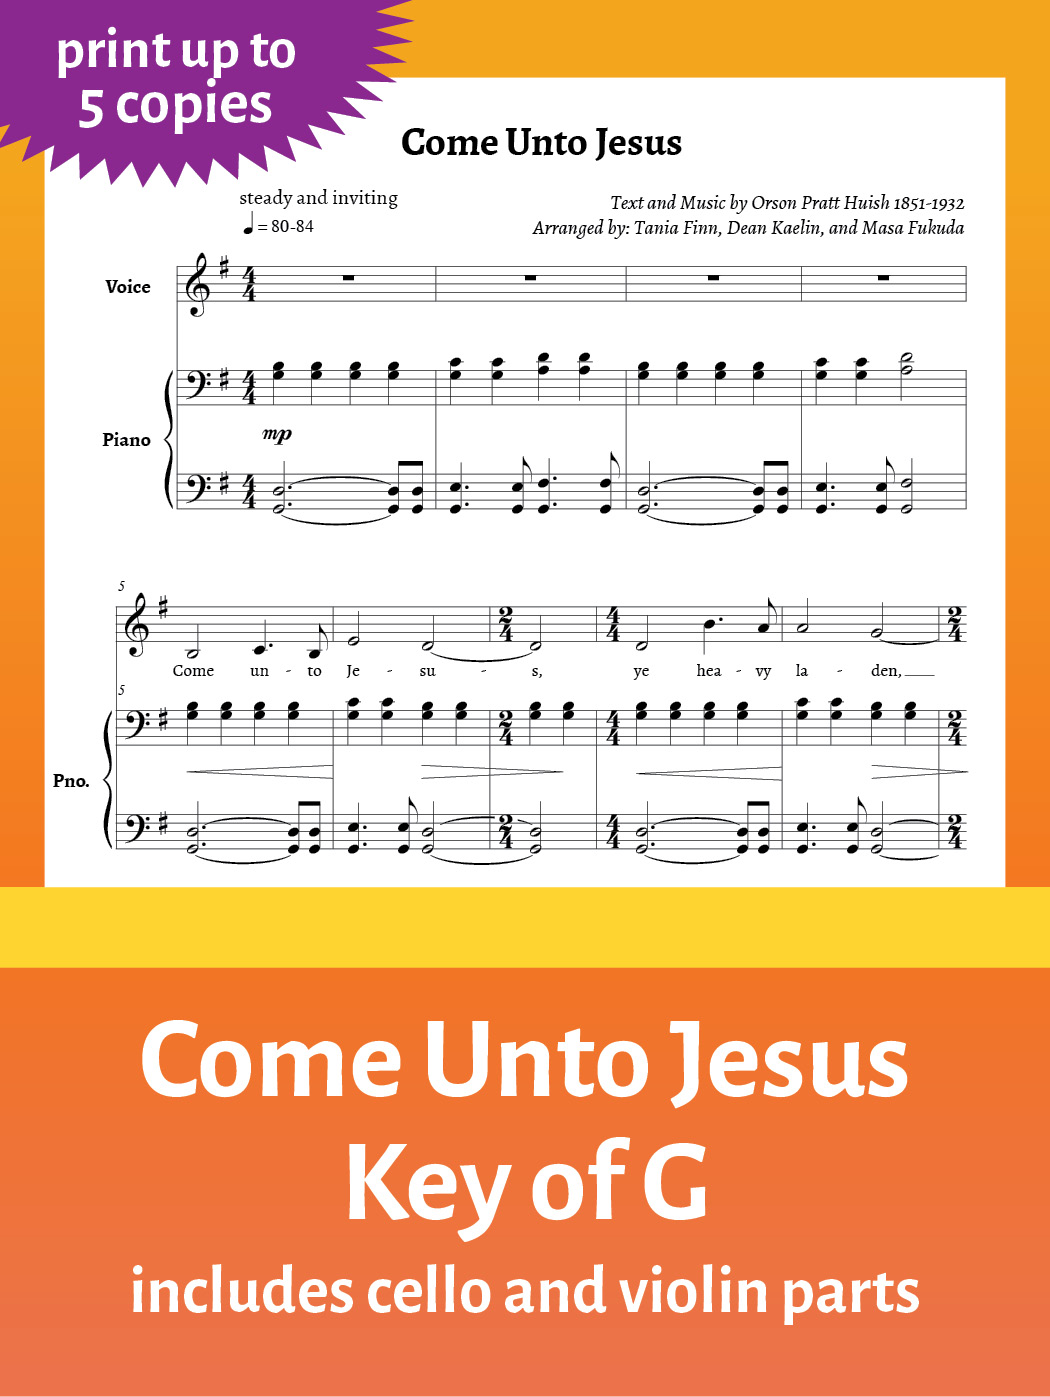 Come Unto Jesus – Sheet Music – Key of G – up to 5 copies